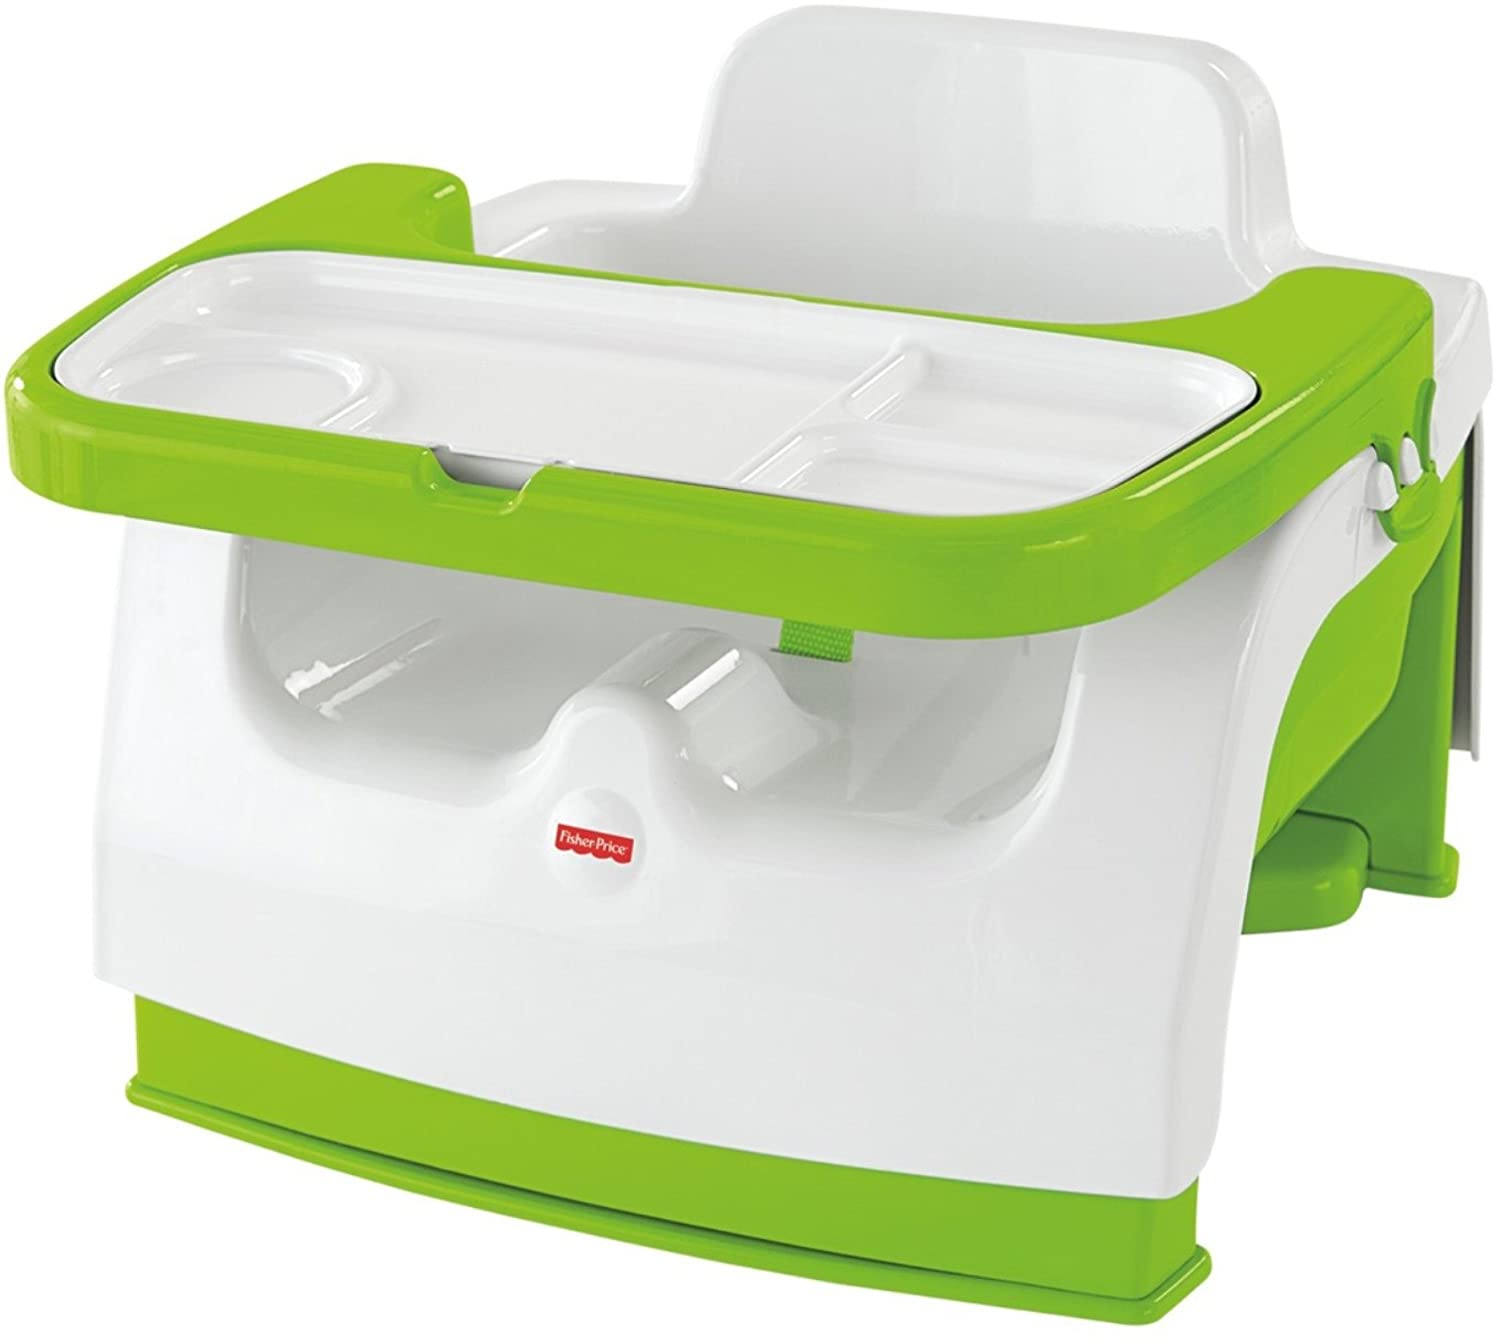 Fisher-Price Grow-with-Me Portable Booster Seat, Green/White CMH59